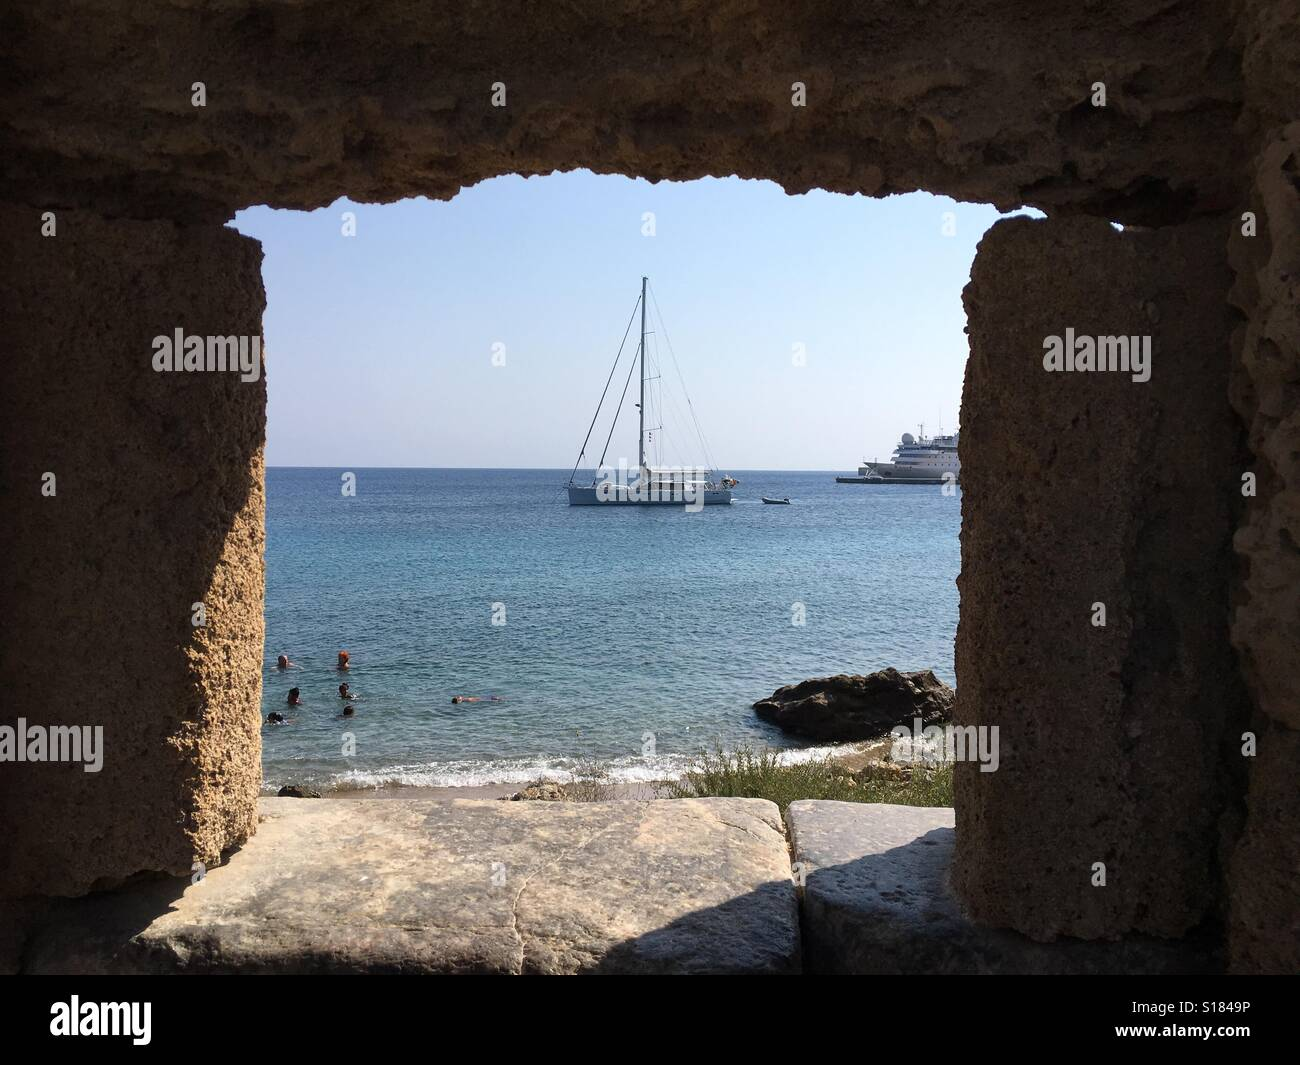 Sailboat Rhodos - Stock Image